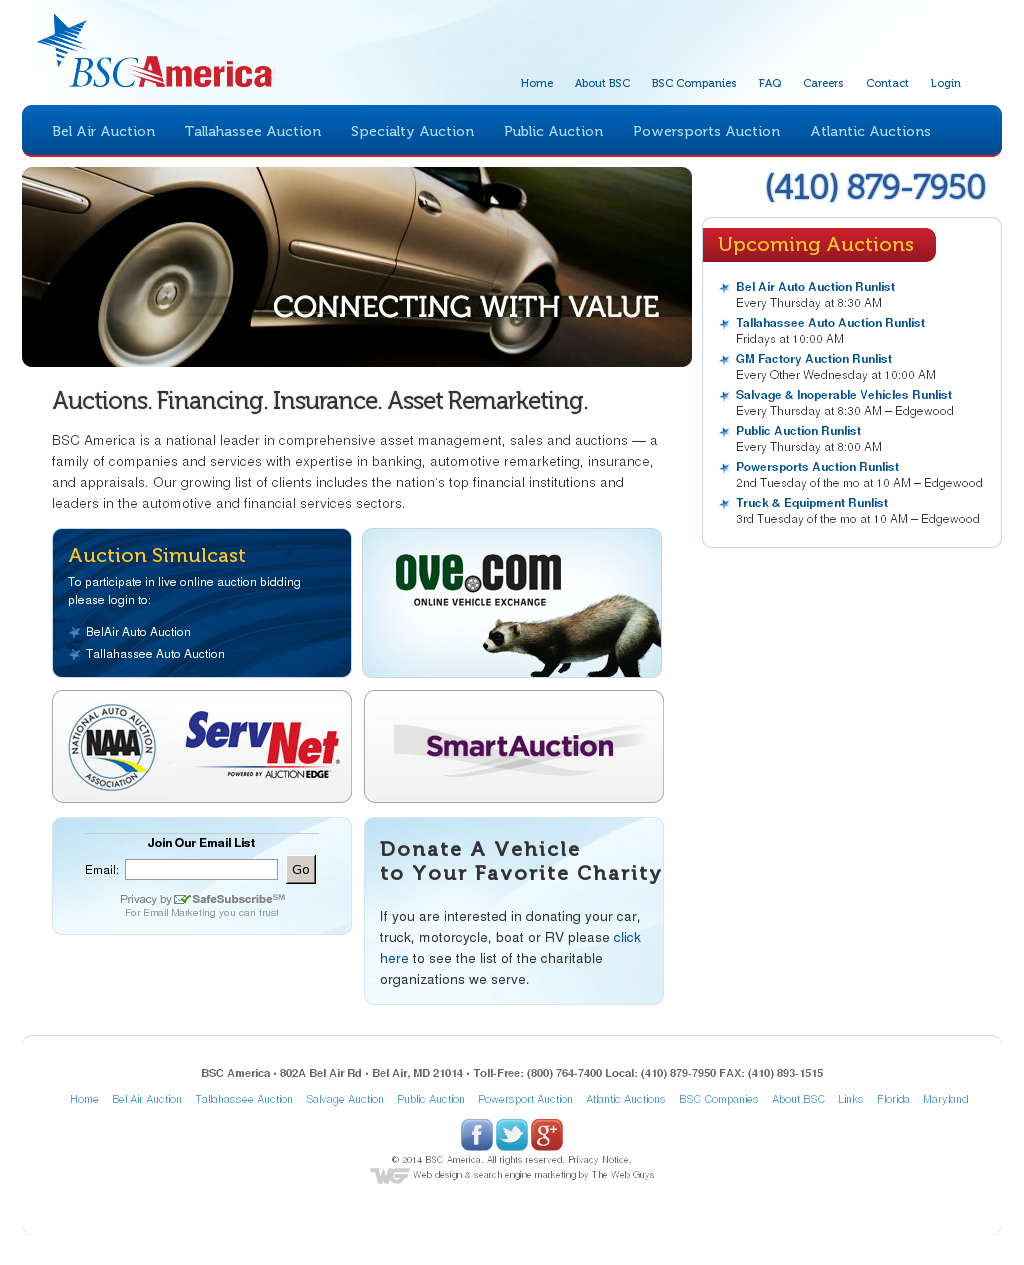 Belair Auto Auction >> Bsc America Competitors Revenue And Employees Owler Company Profile